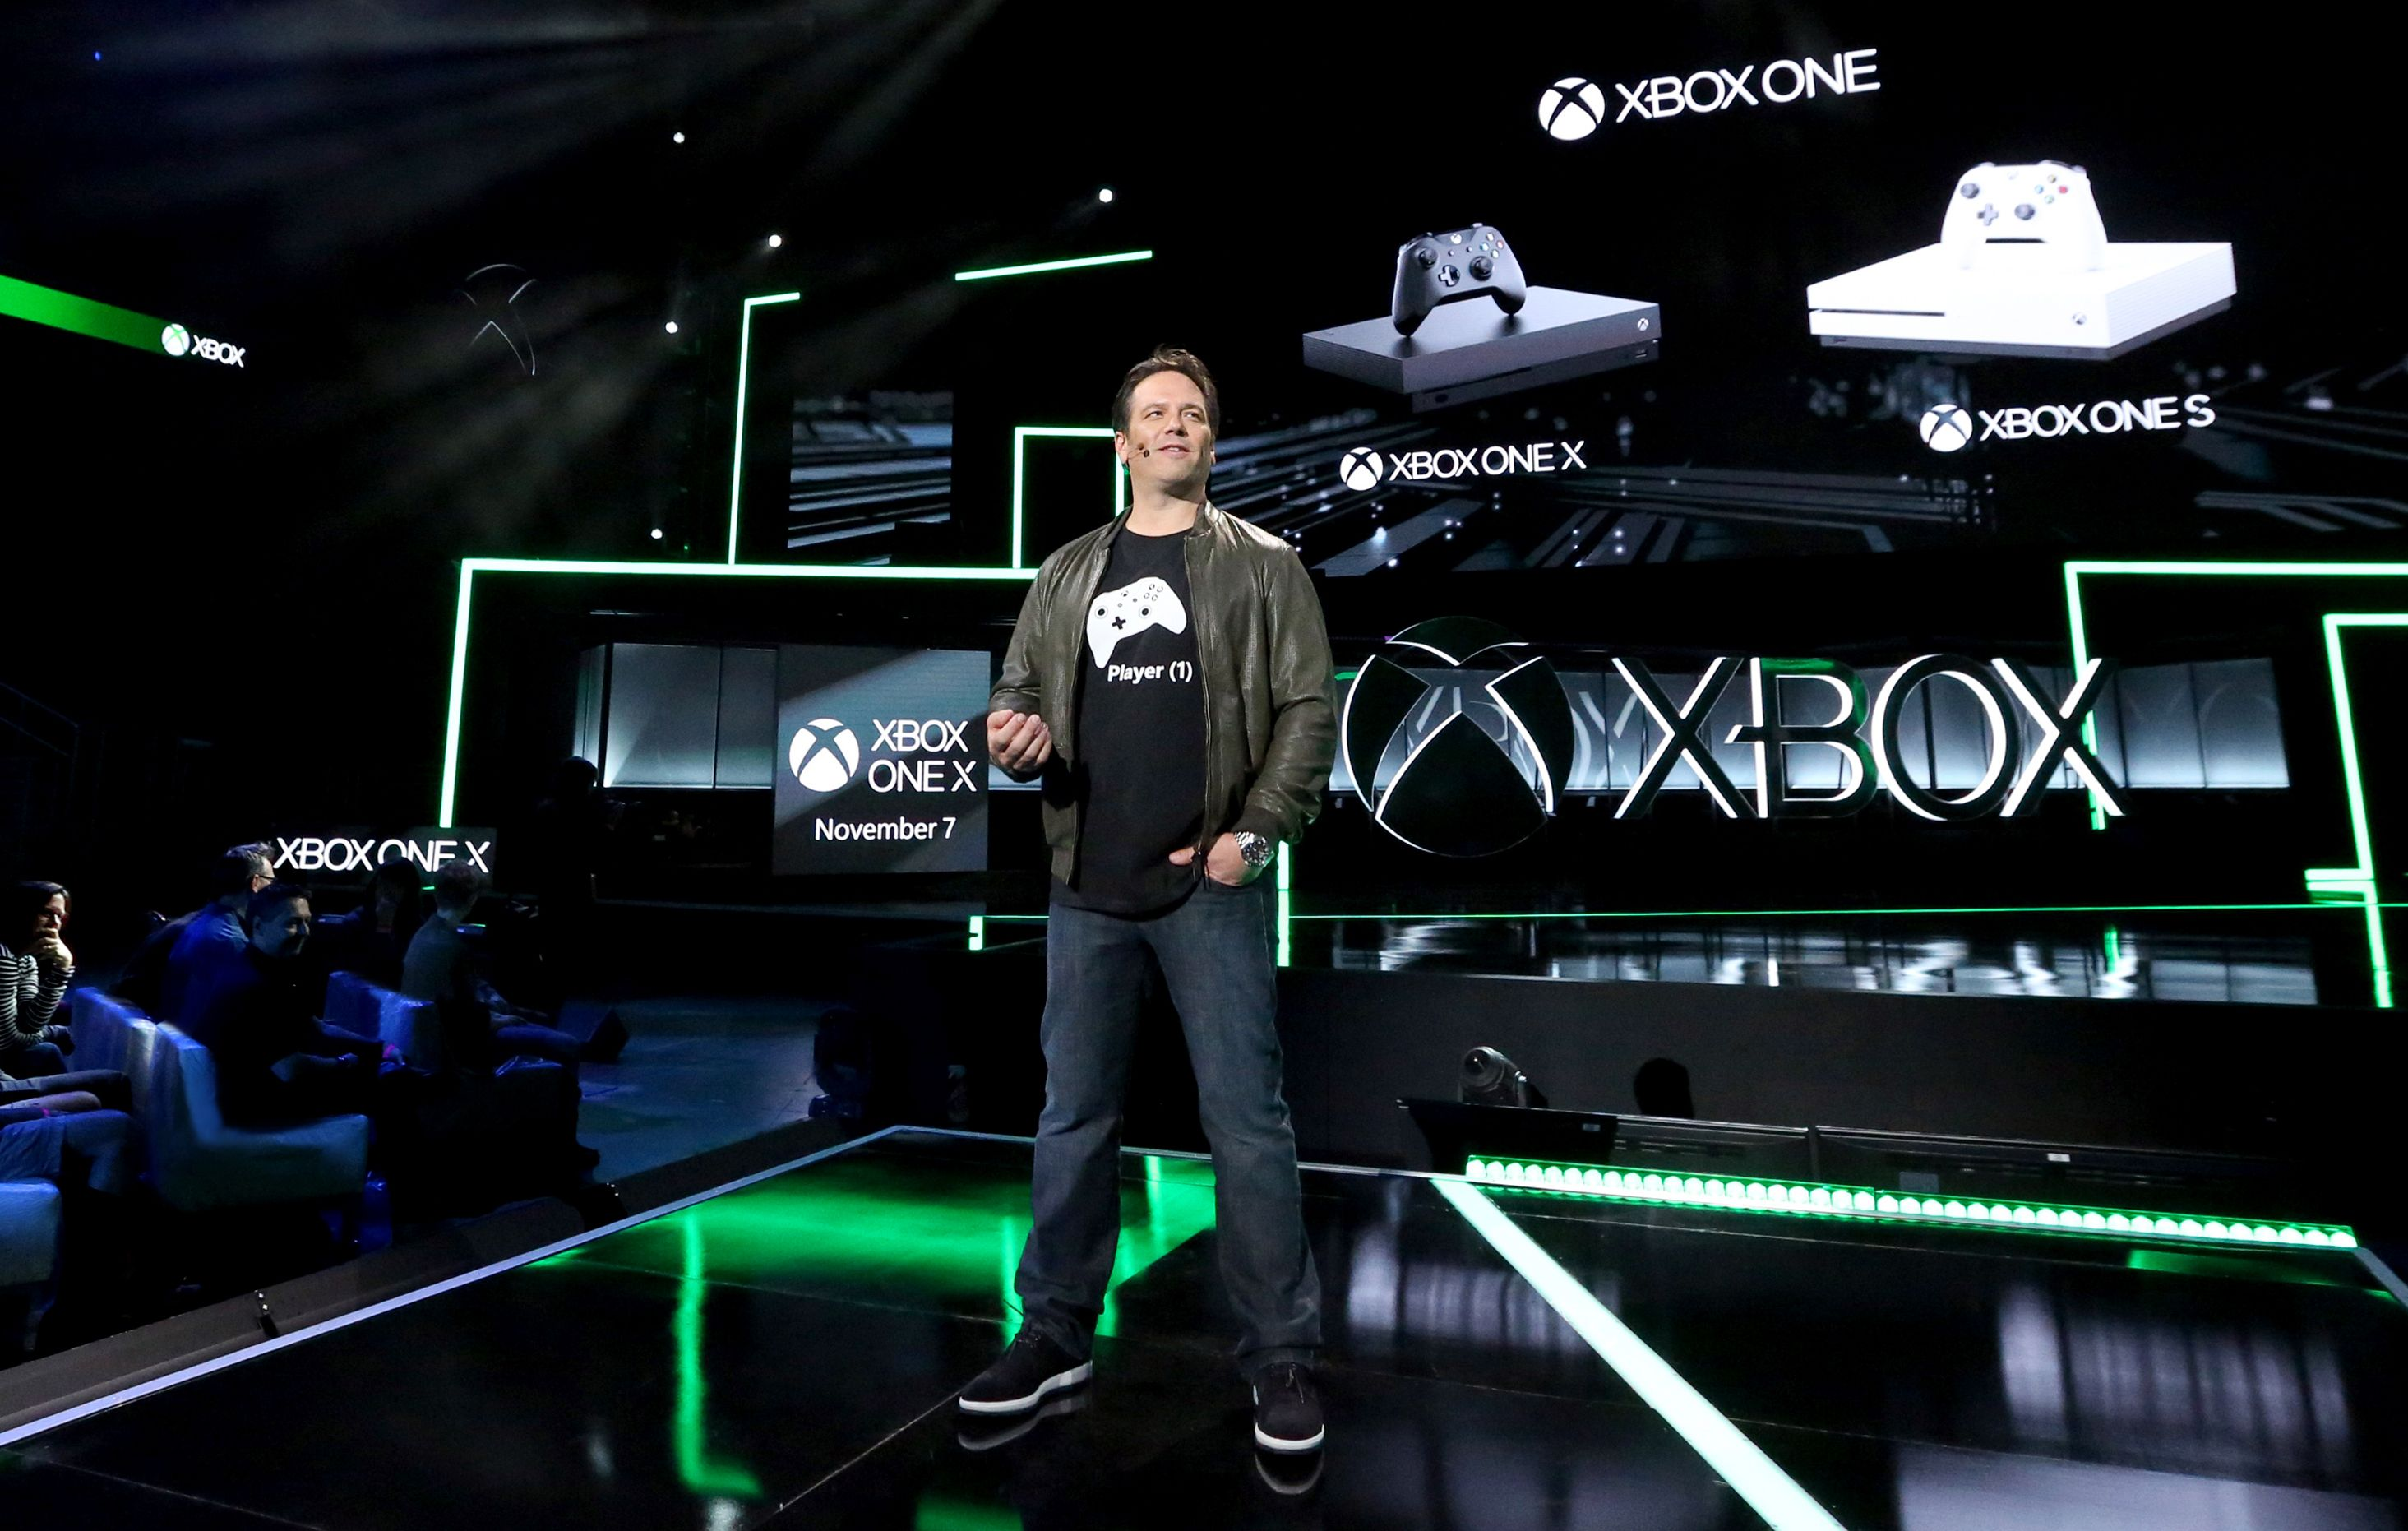 Phil Spencer Xbox One X interview – 'Most people just want to go play games'